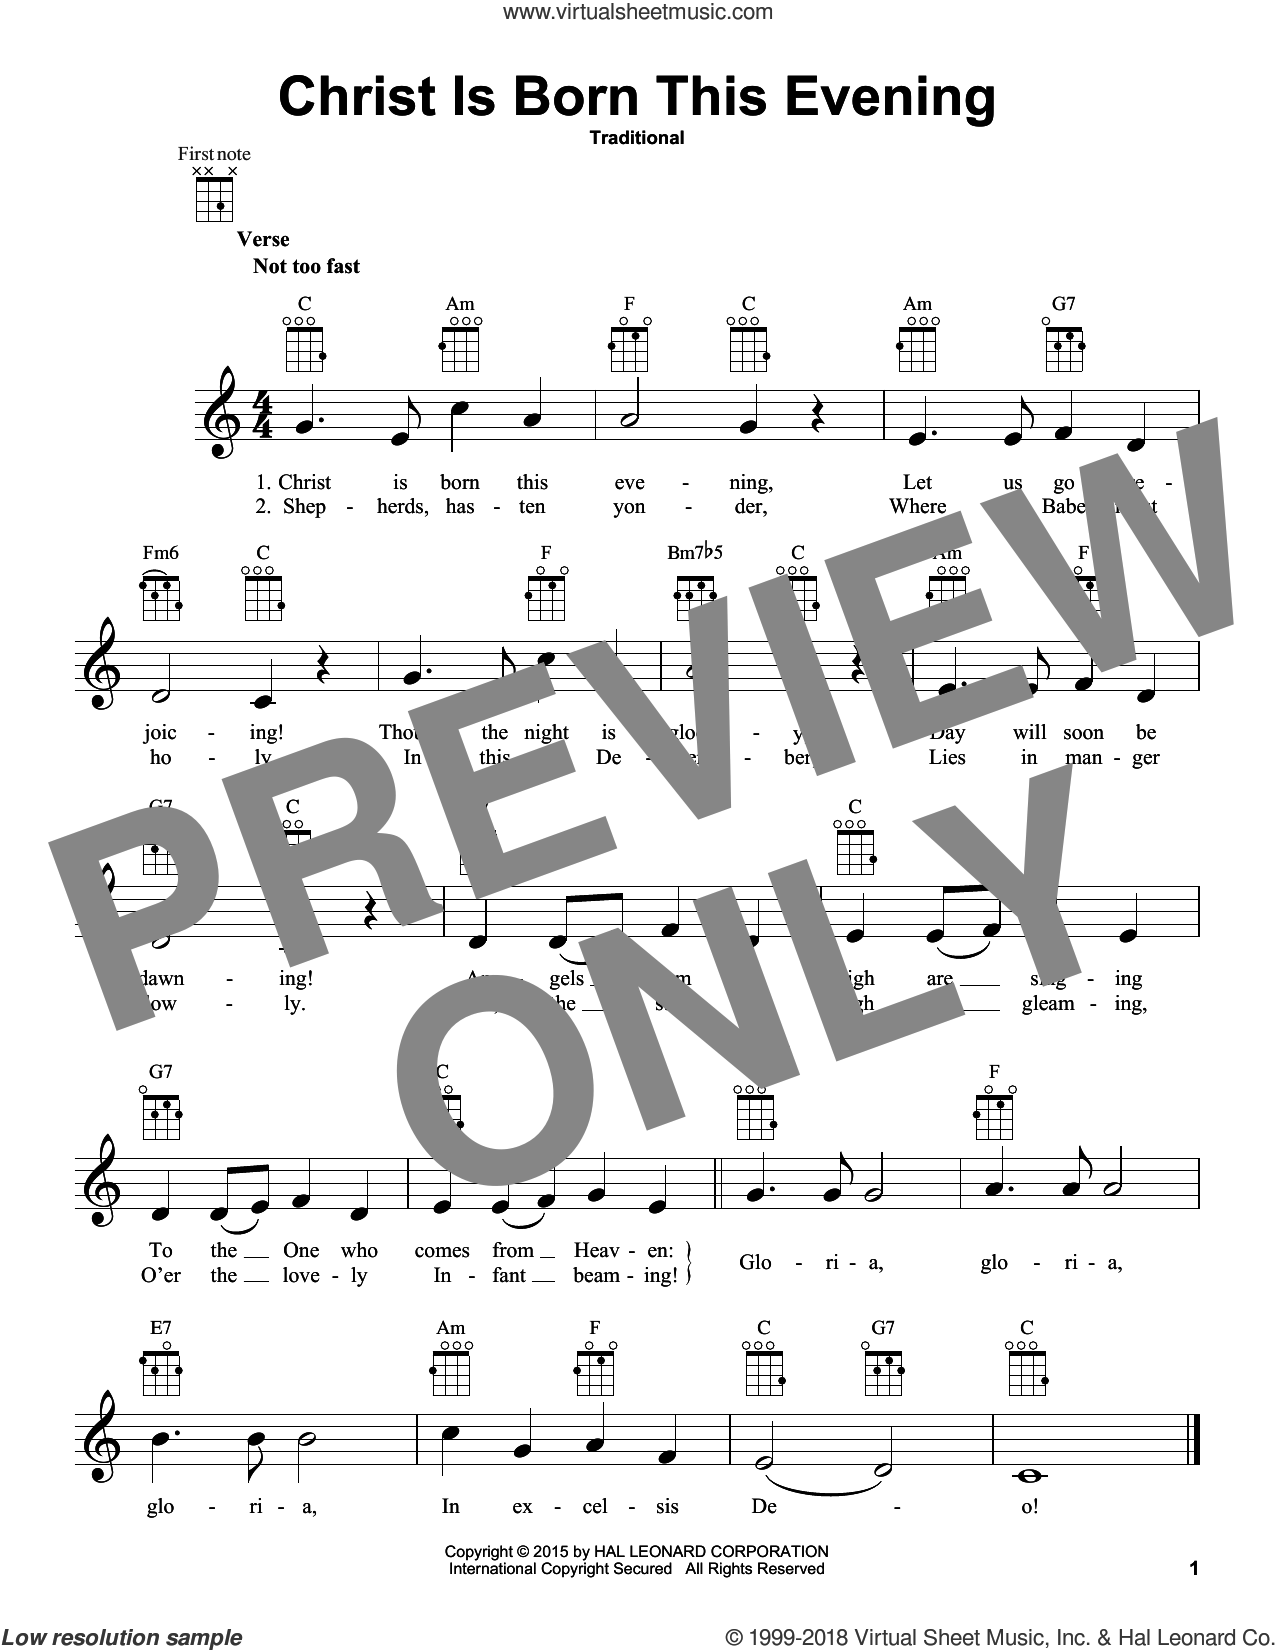 Christ Is Born This Evening sheet music for ukulele, intermediate skill level